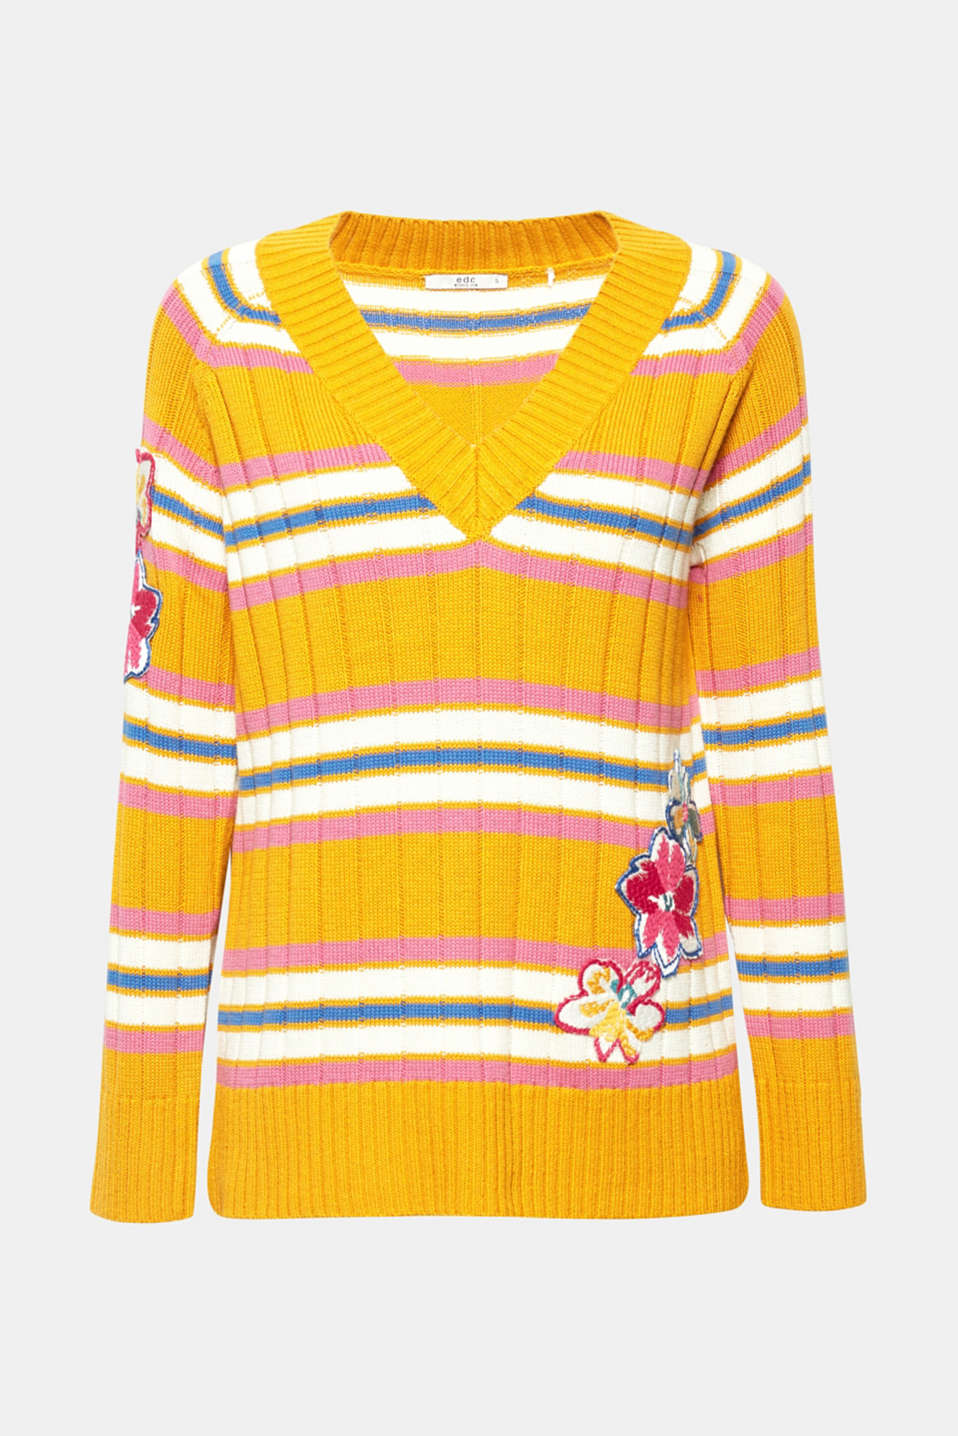 Whether in a plain colour or with colourful stripes: Elaborate, colourful floral appliqués decorate the sleeves and front of this sporty ribbed jumper and give it a brand new flair!